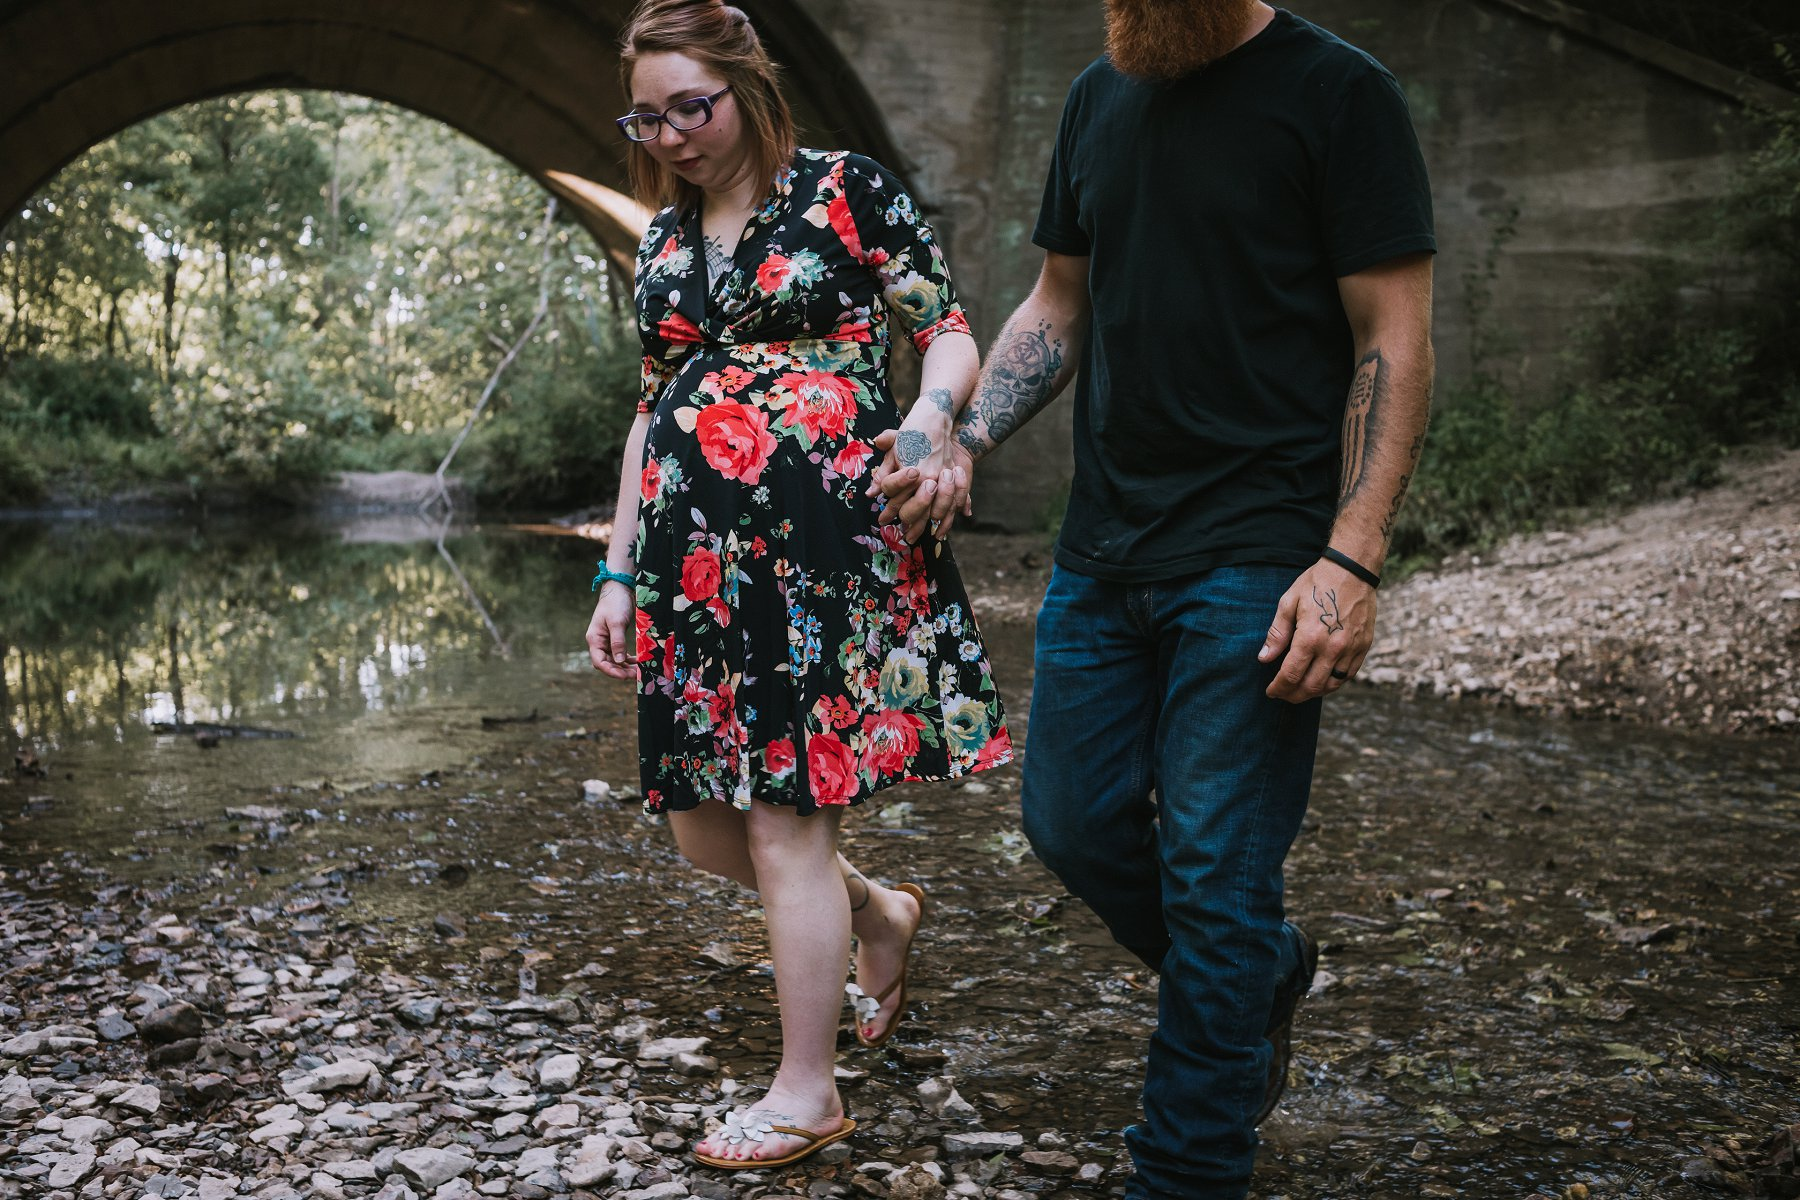 Creek Maternity Photography in Kansas City by Merry Ohler | Wedding Photographer Kansas City-23